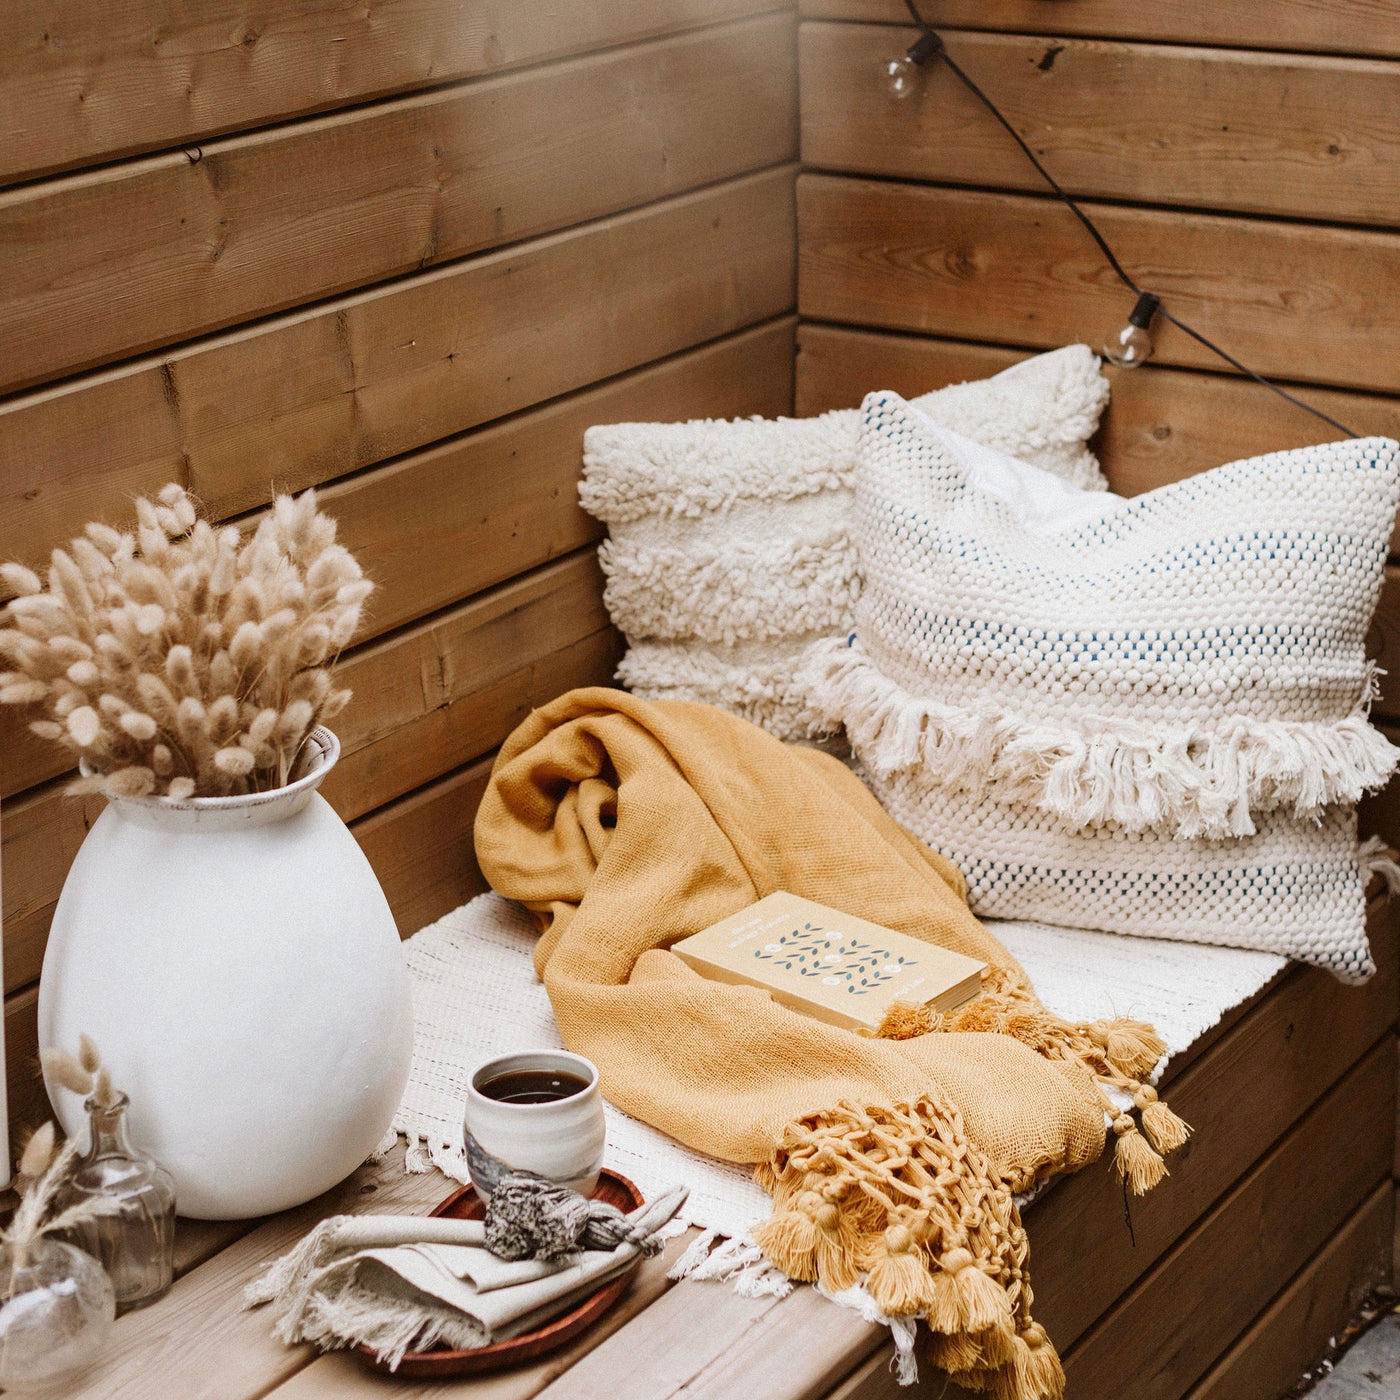 Wooden bench with textured pillows, blankets, and vase